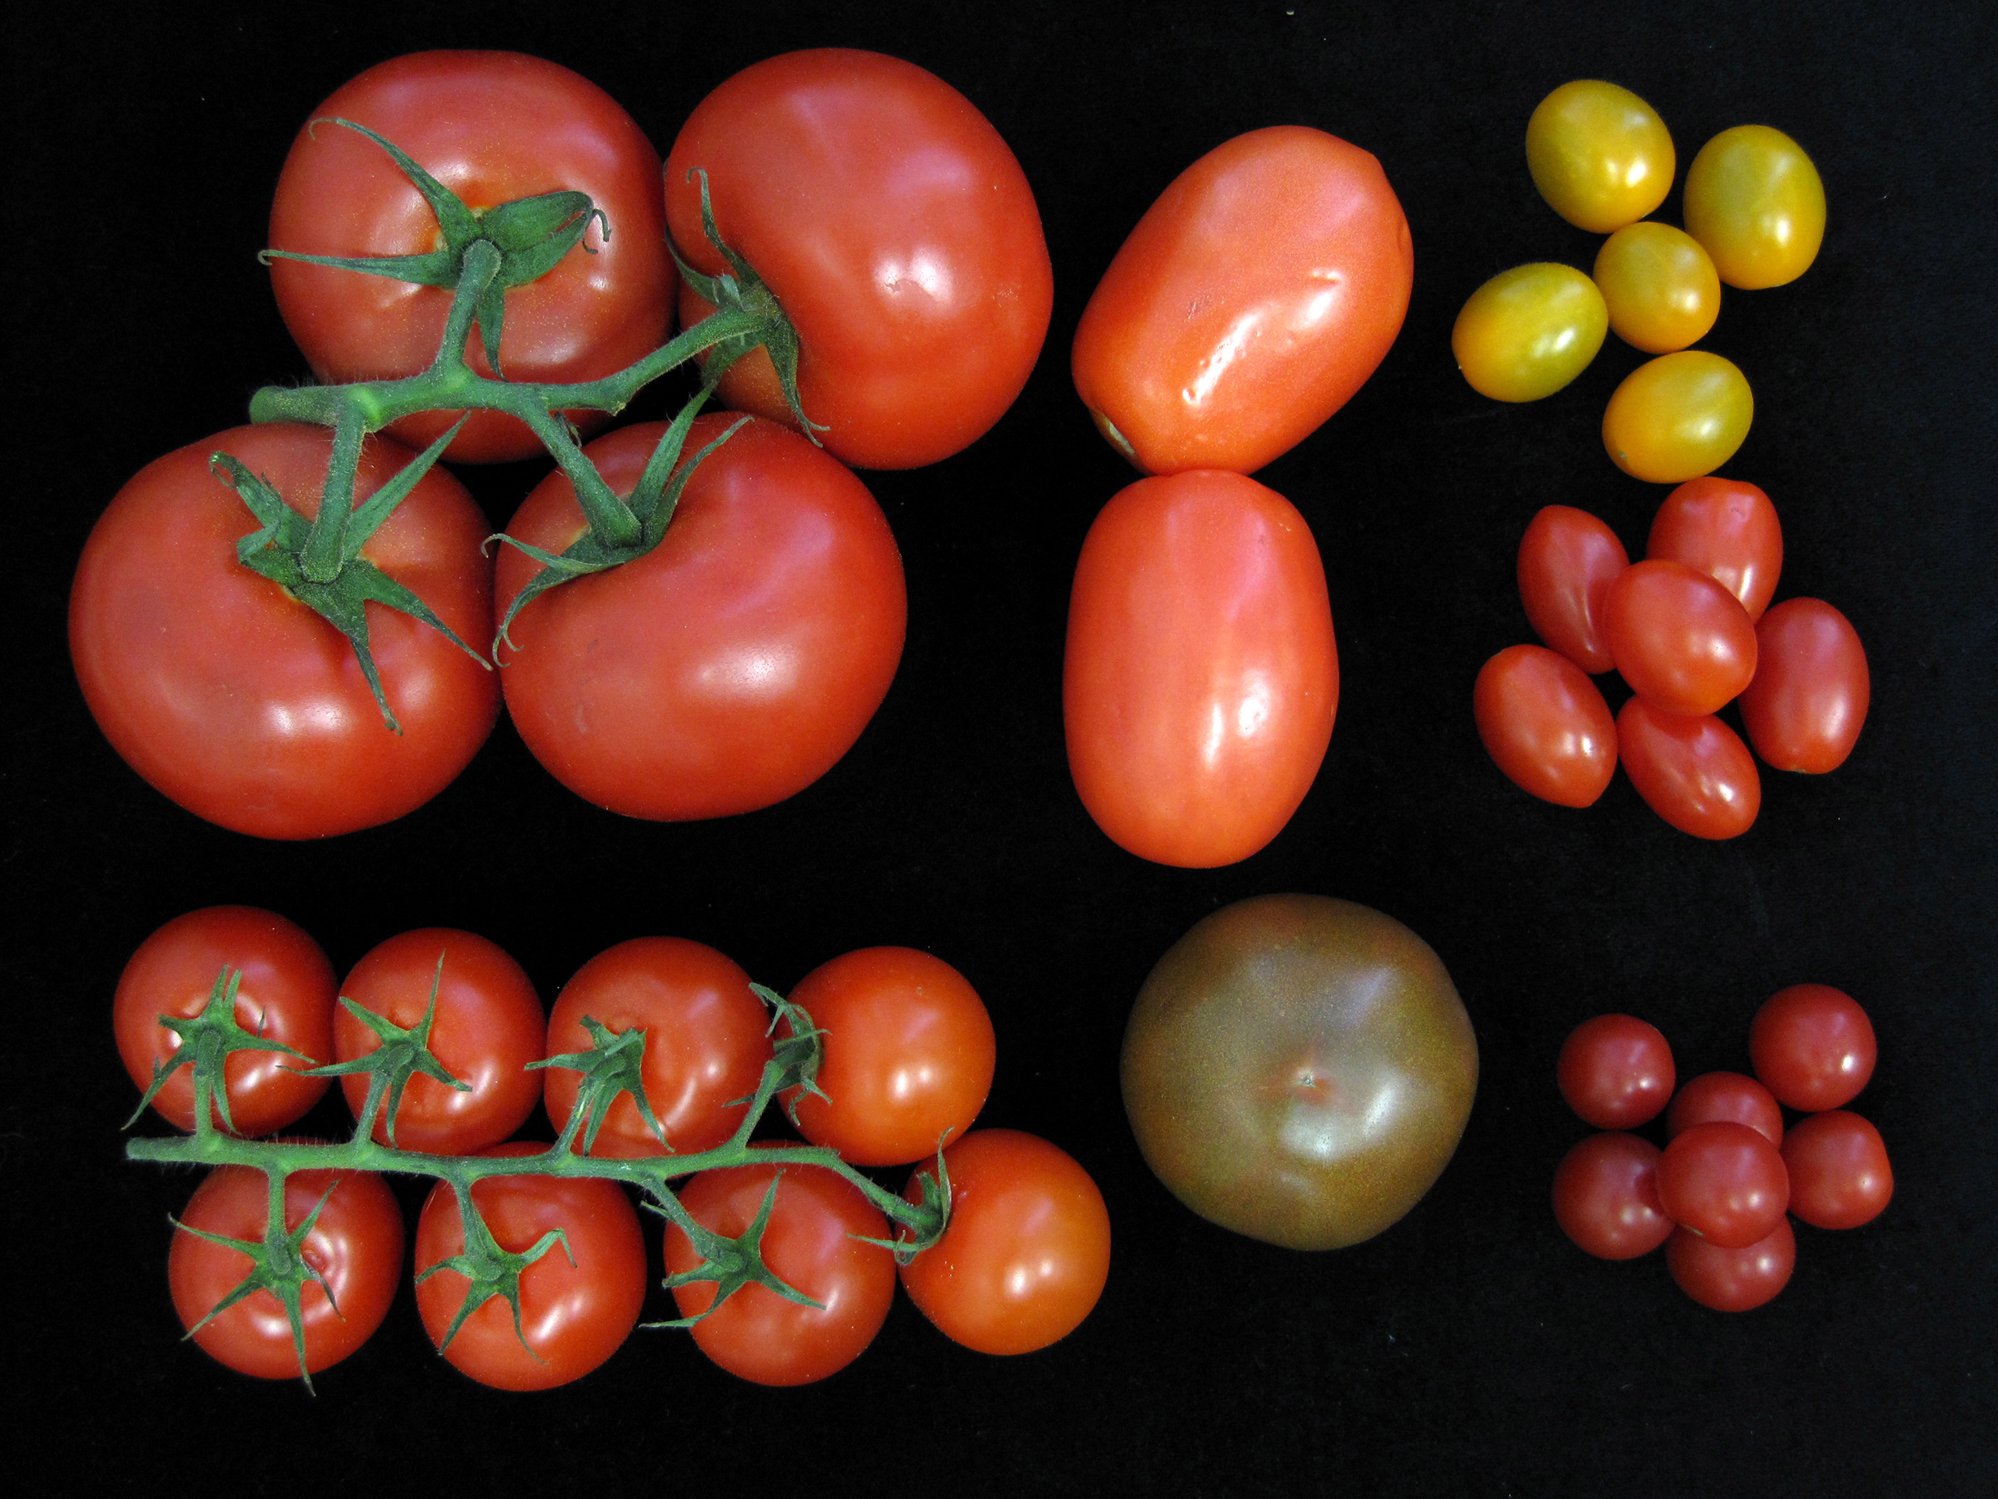 A Non-GMO Way To Get More, Tastier Tomatoes